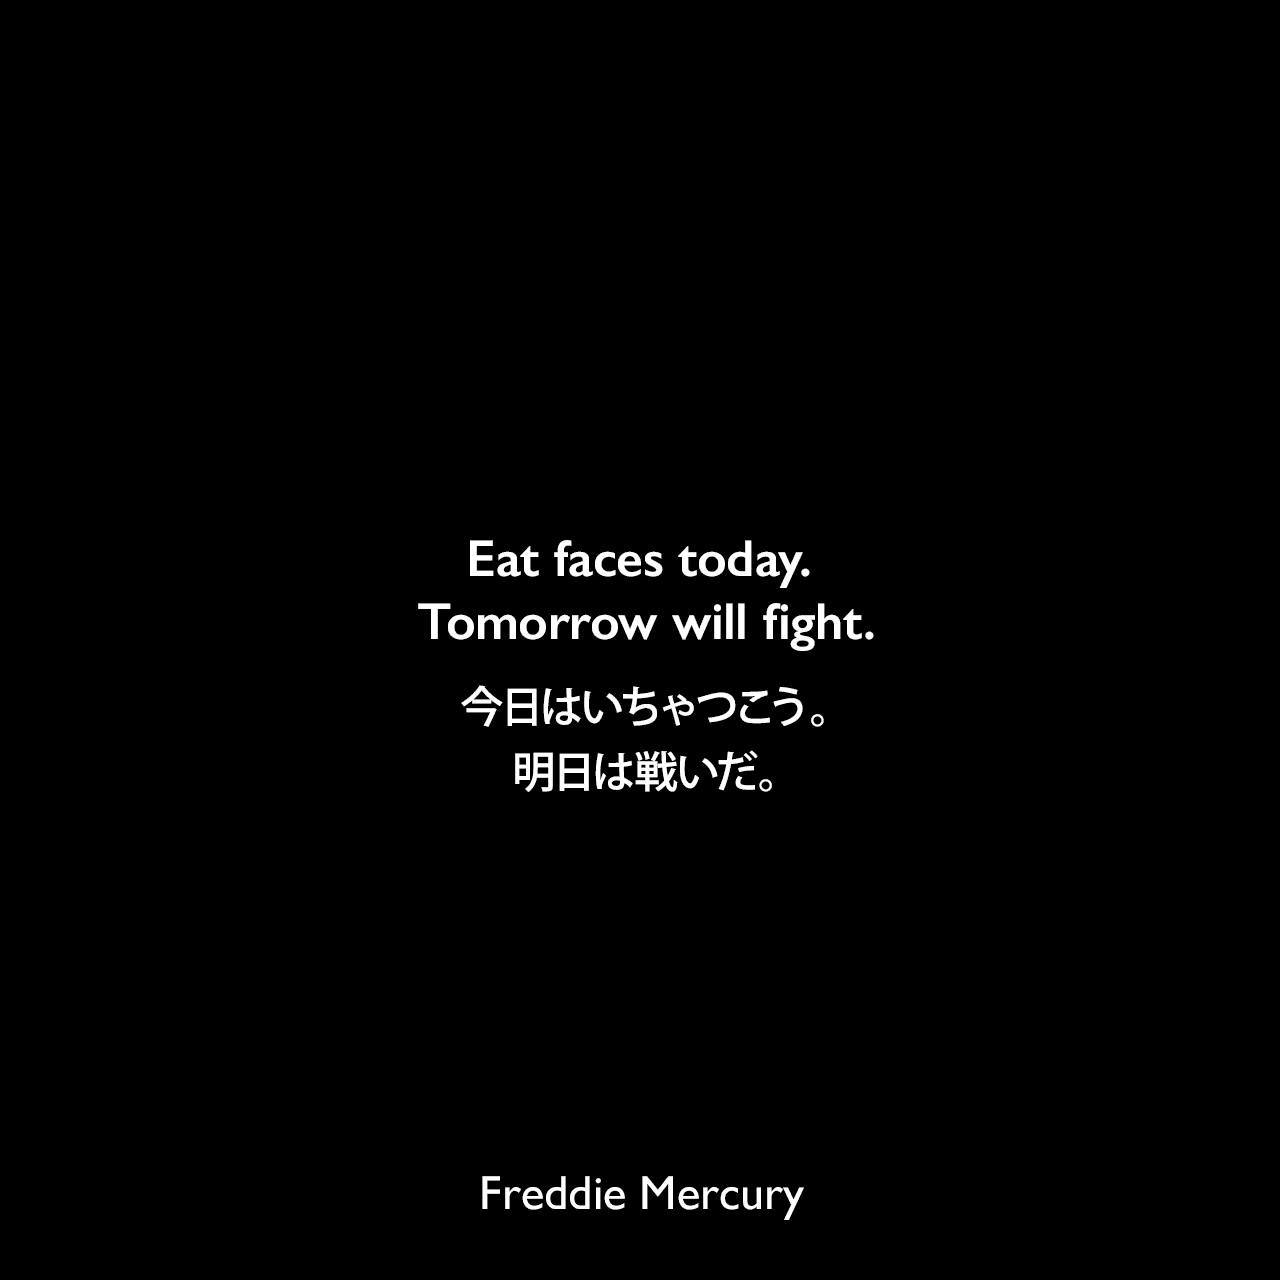 Eat faces today. Tomorrow will fight.今日はいちゃつこう。明日は戦いだ。Freddie Mercury